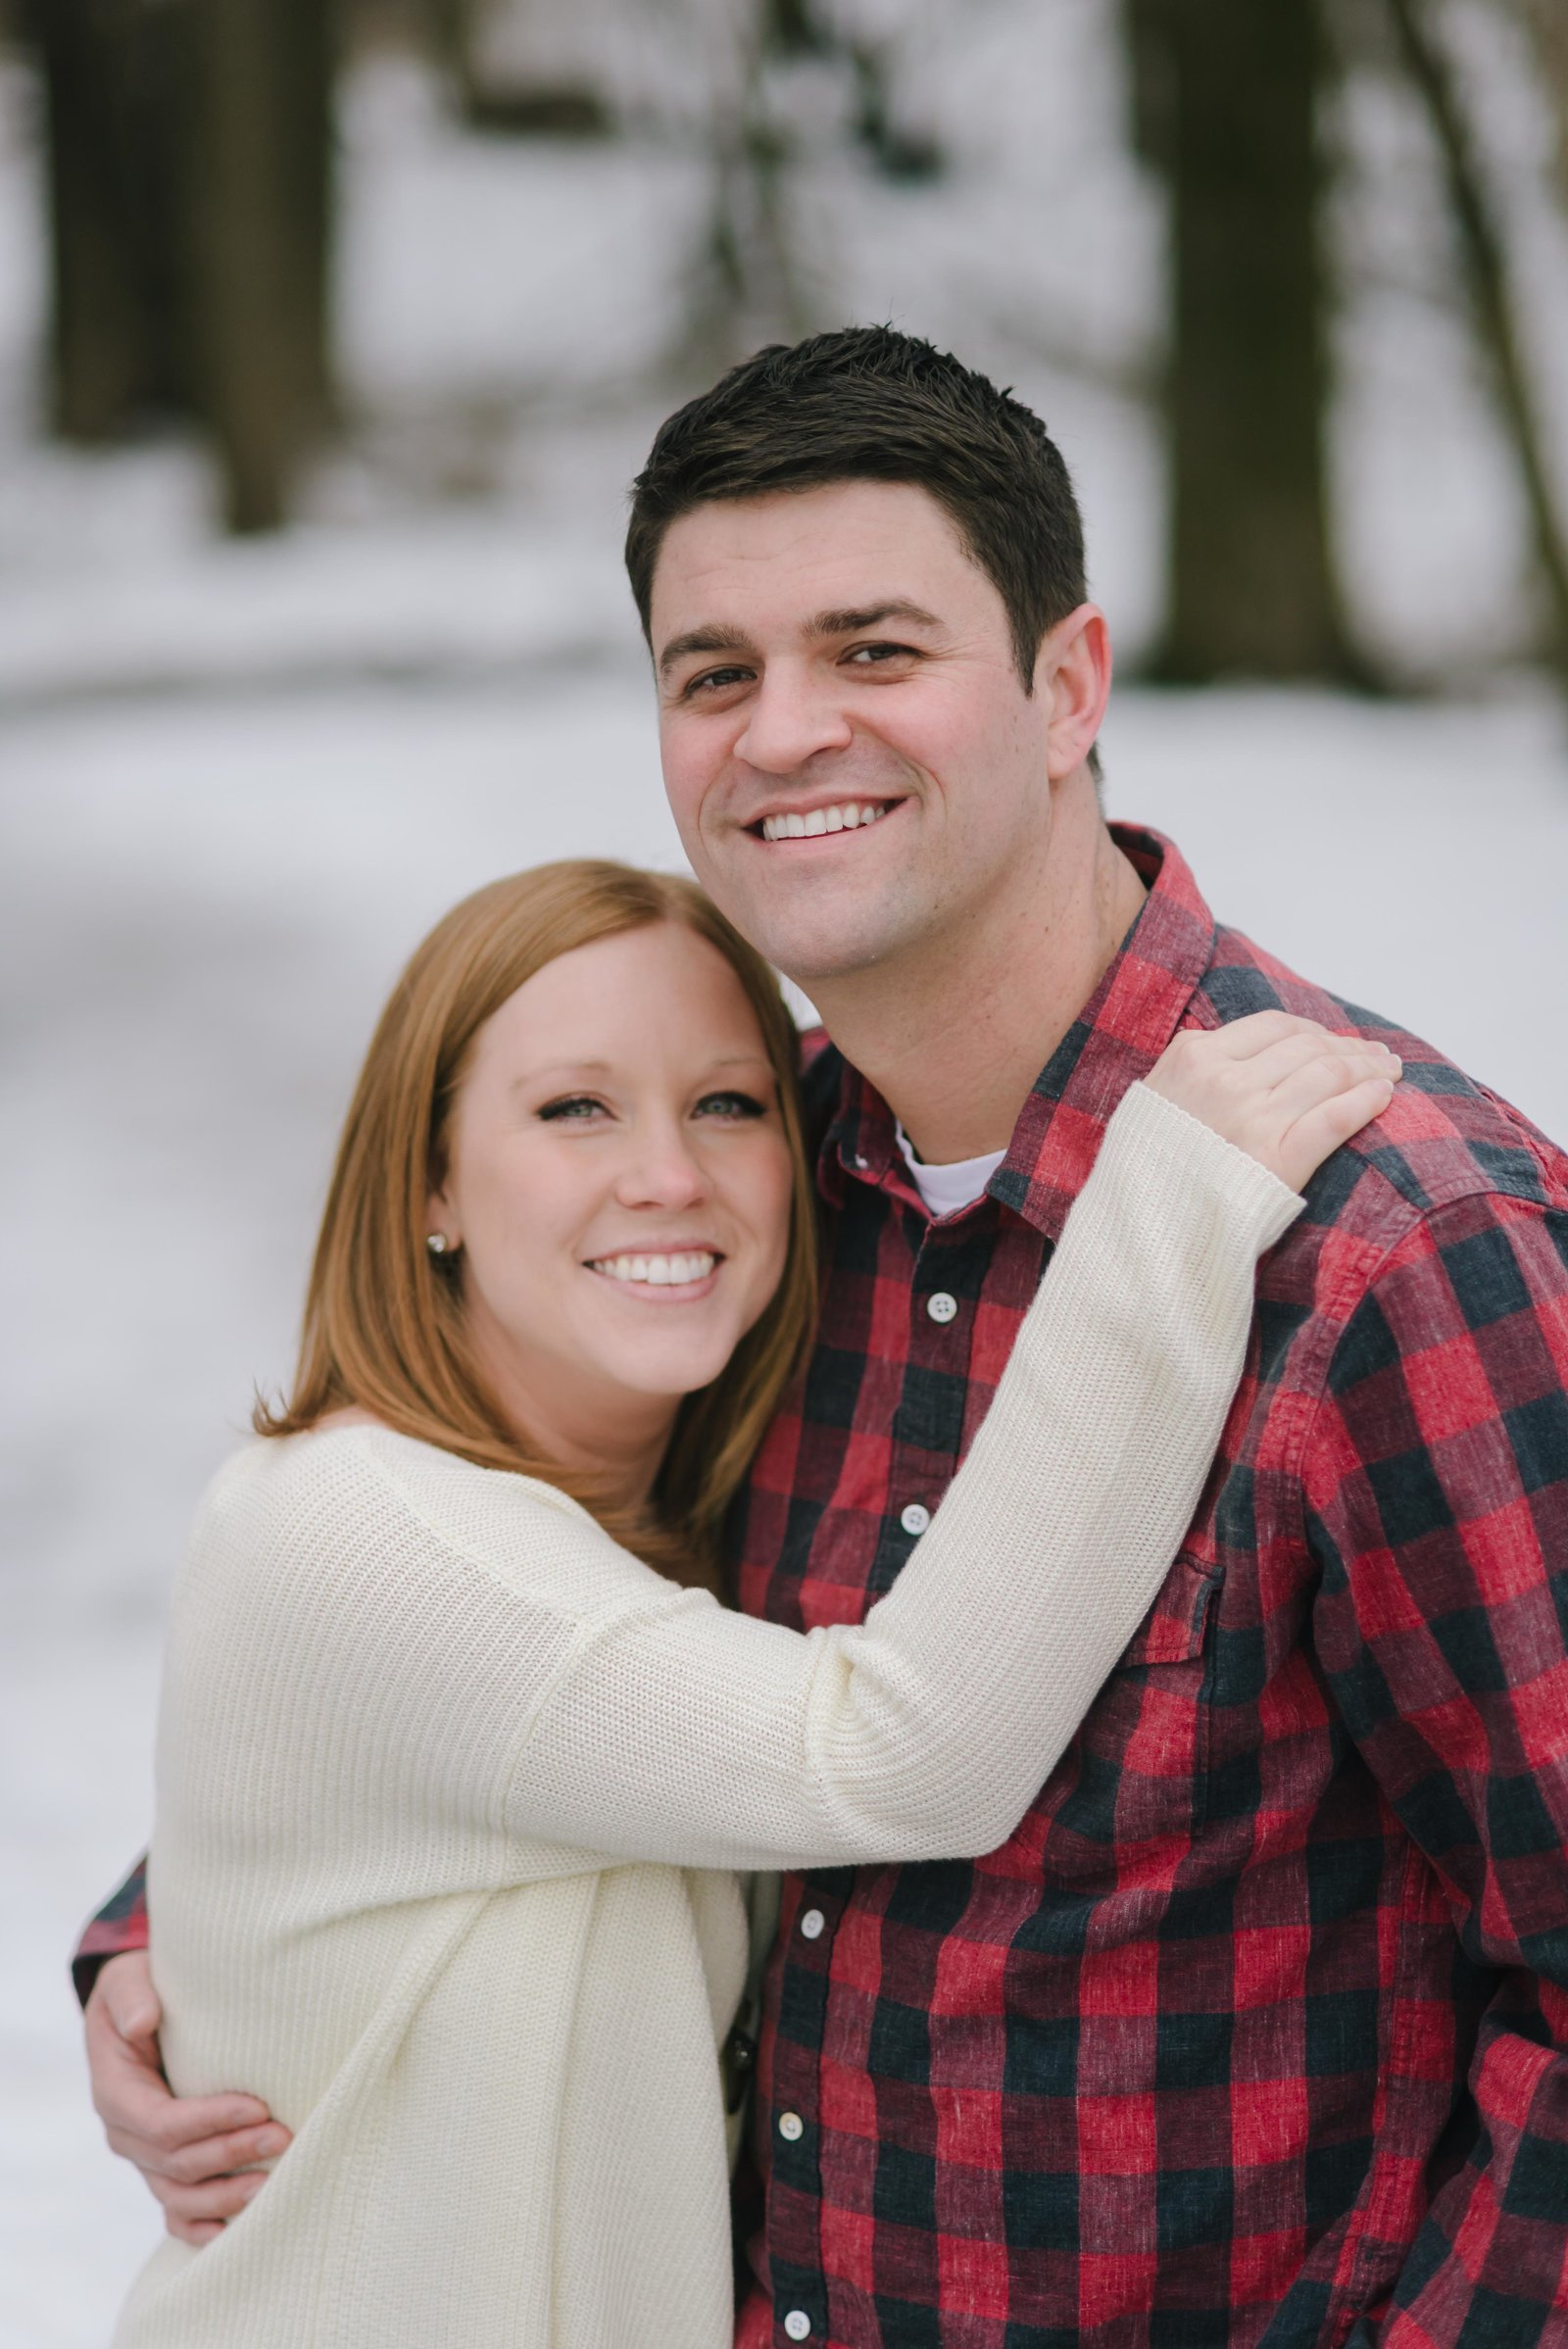 Minnesota Winter Engagement Photos 1204